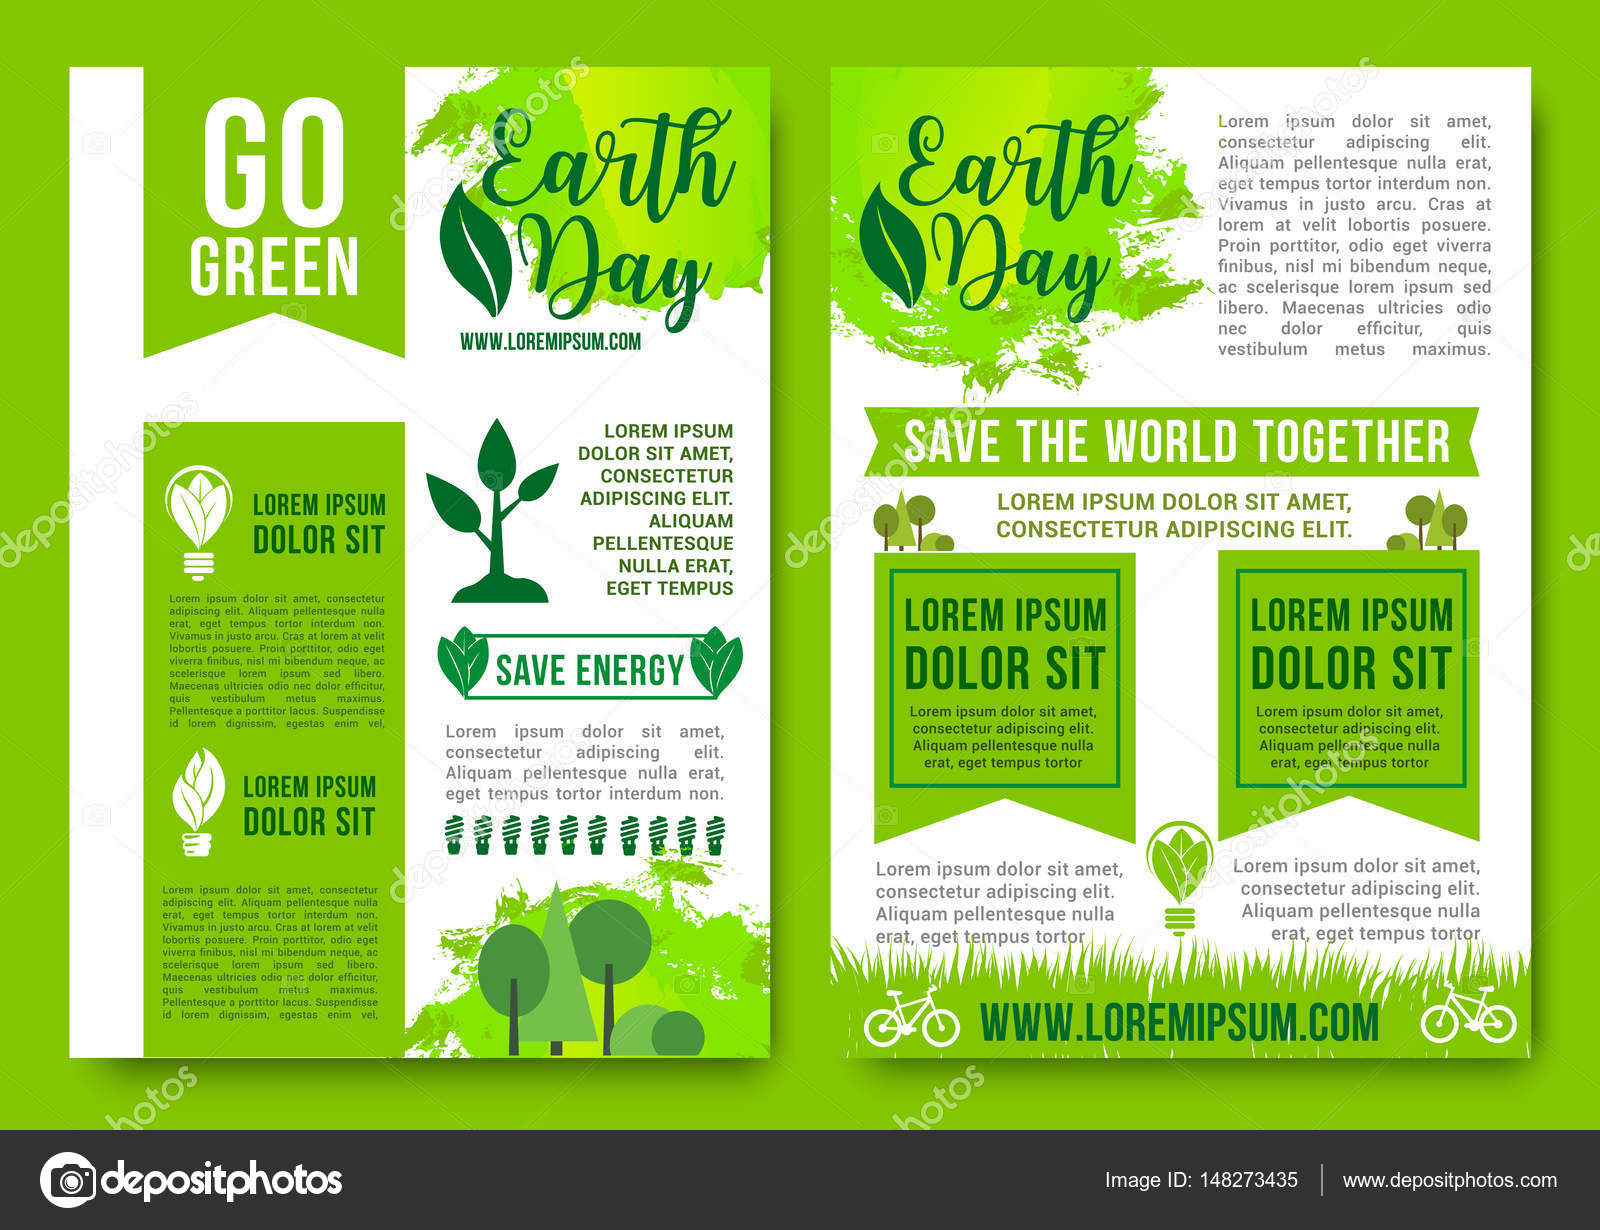 Save Earth And Go Green Vector Posters Design Of Nature Ecology Conservation Environment Pollution Global World Recycling Energy Concept